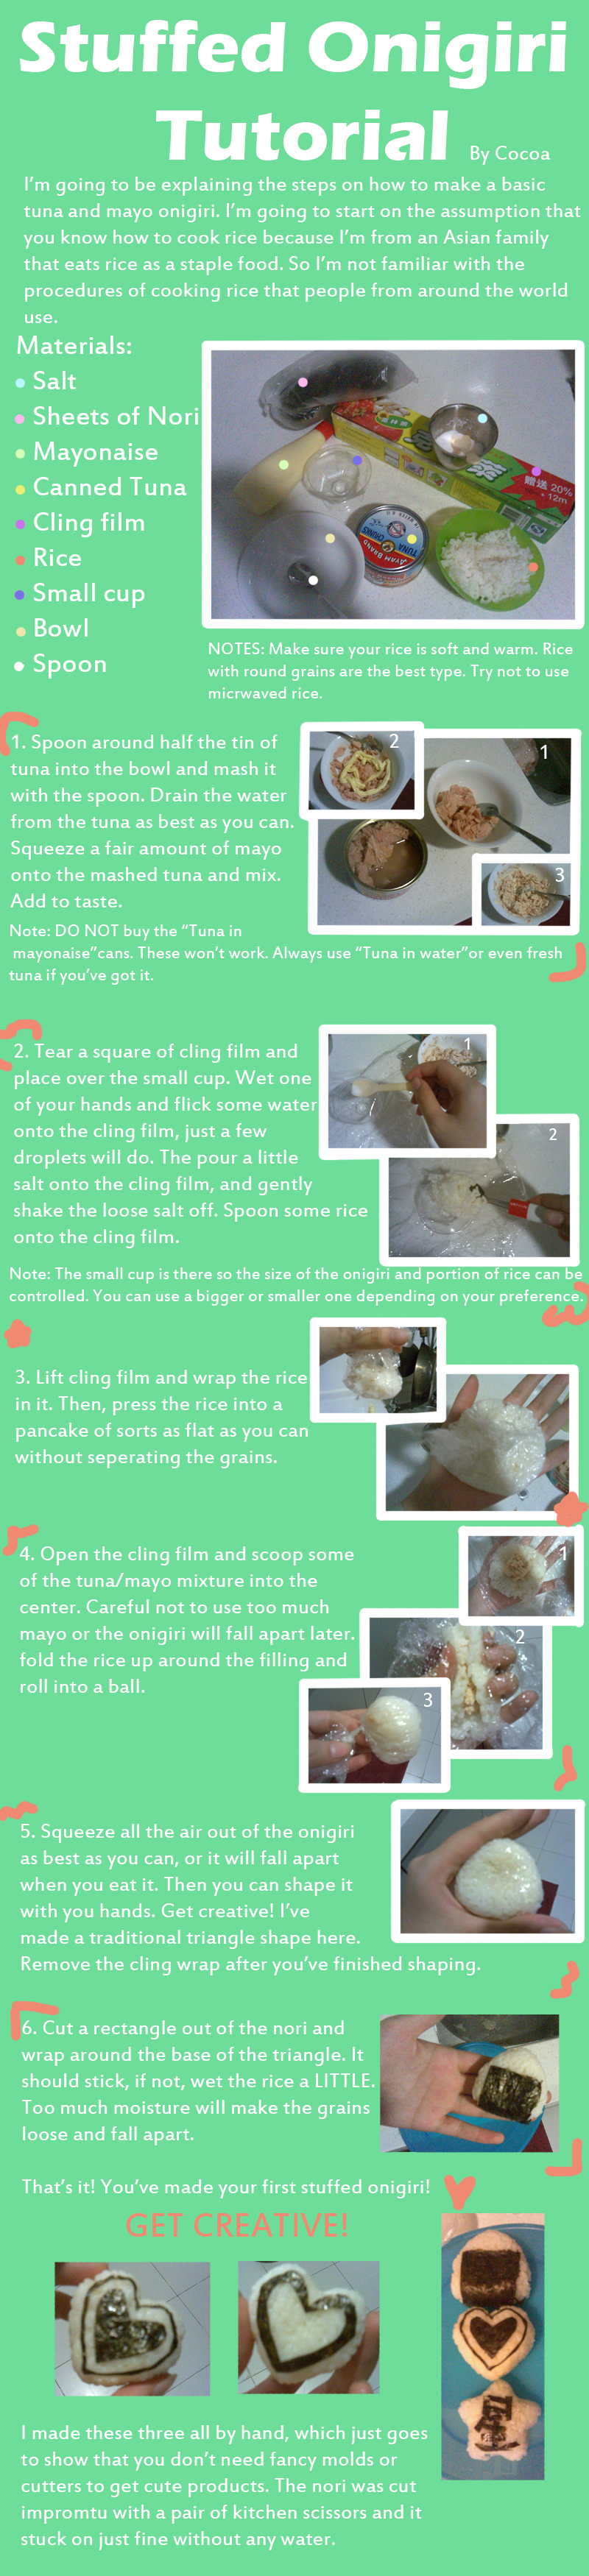 Stuffed Onigiri Tutorial by Eruda-and-Freya